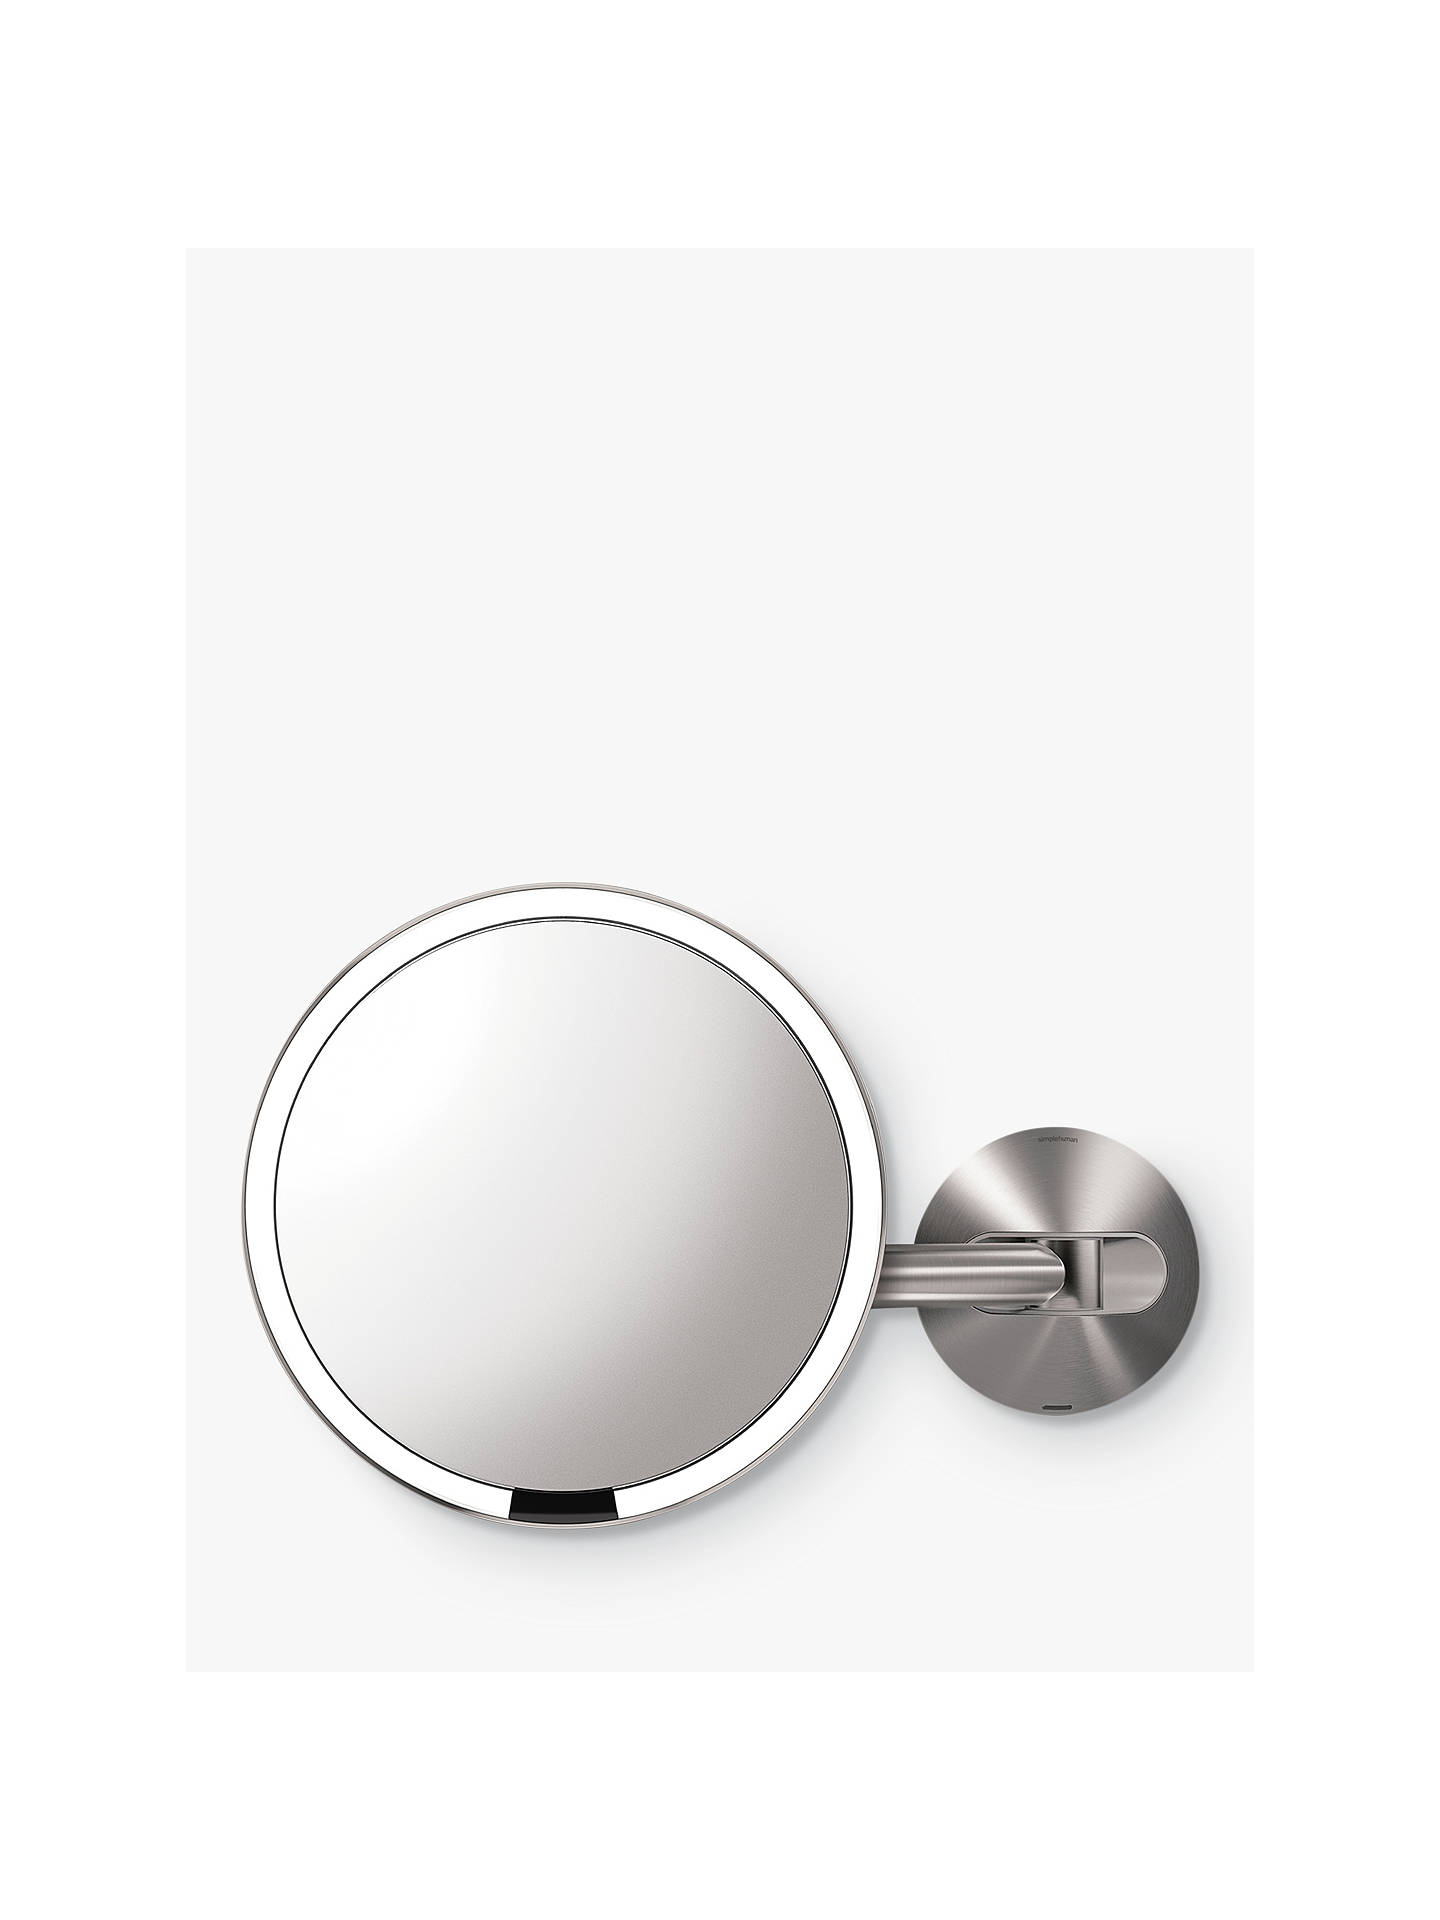 Buysimplehuman Mounted Magnifying Sensor Mirror, Battery Operated Online at johnlewis.com